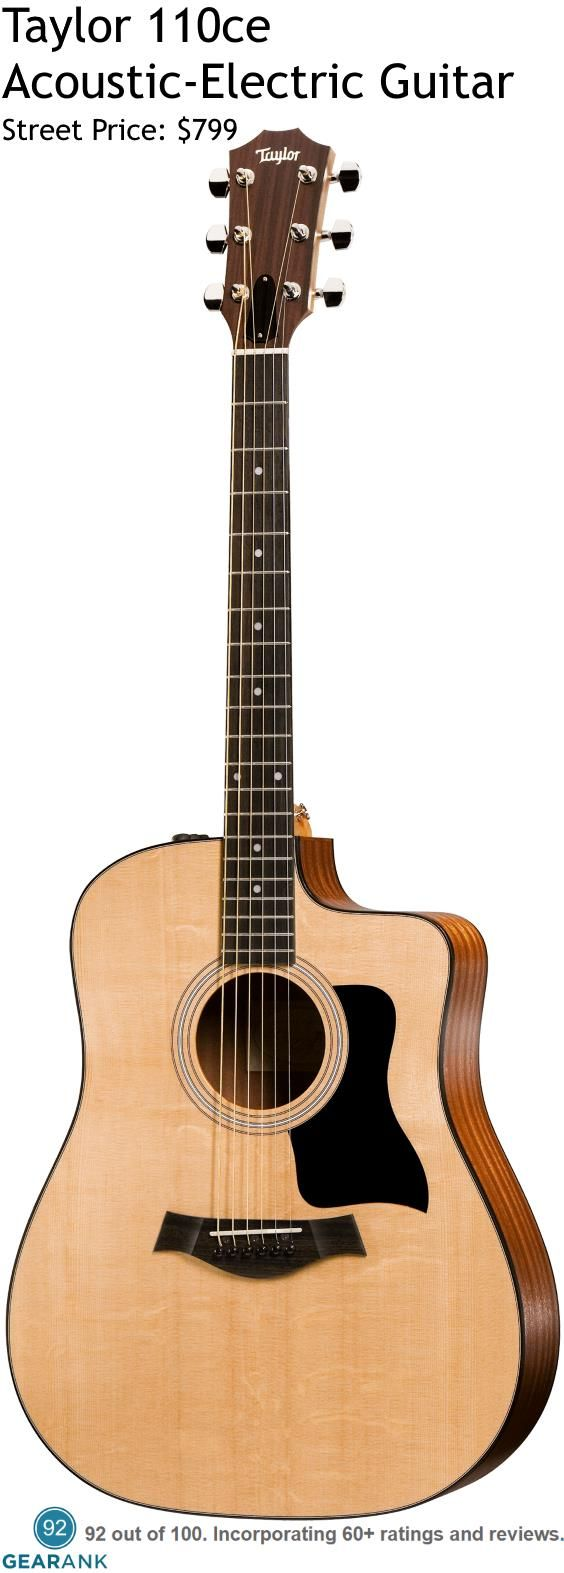 Taylor 110ce 6 String Acoustic-Electric Guitar. Features: Solid Sitka Spruce Top - Laminated Sapele Back/Sides - Dreadnought with Cutaway - ES-T Electronics - Gig Bag Included. For a detailed Guide to Acoustic Guitars see https://www.gearank.com/guides/acoustic-guitars